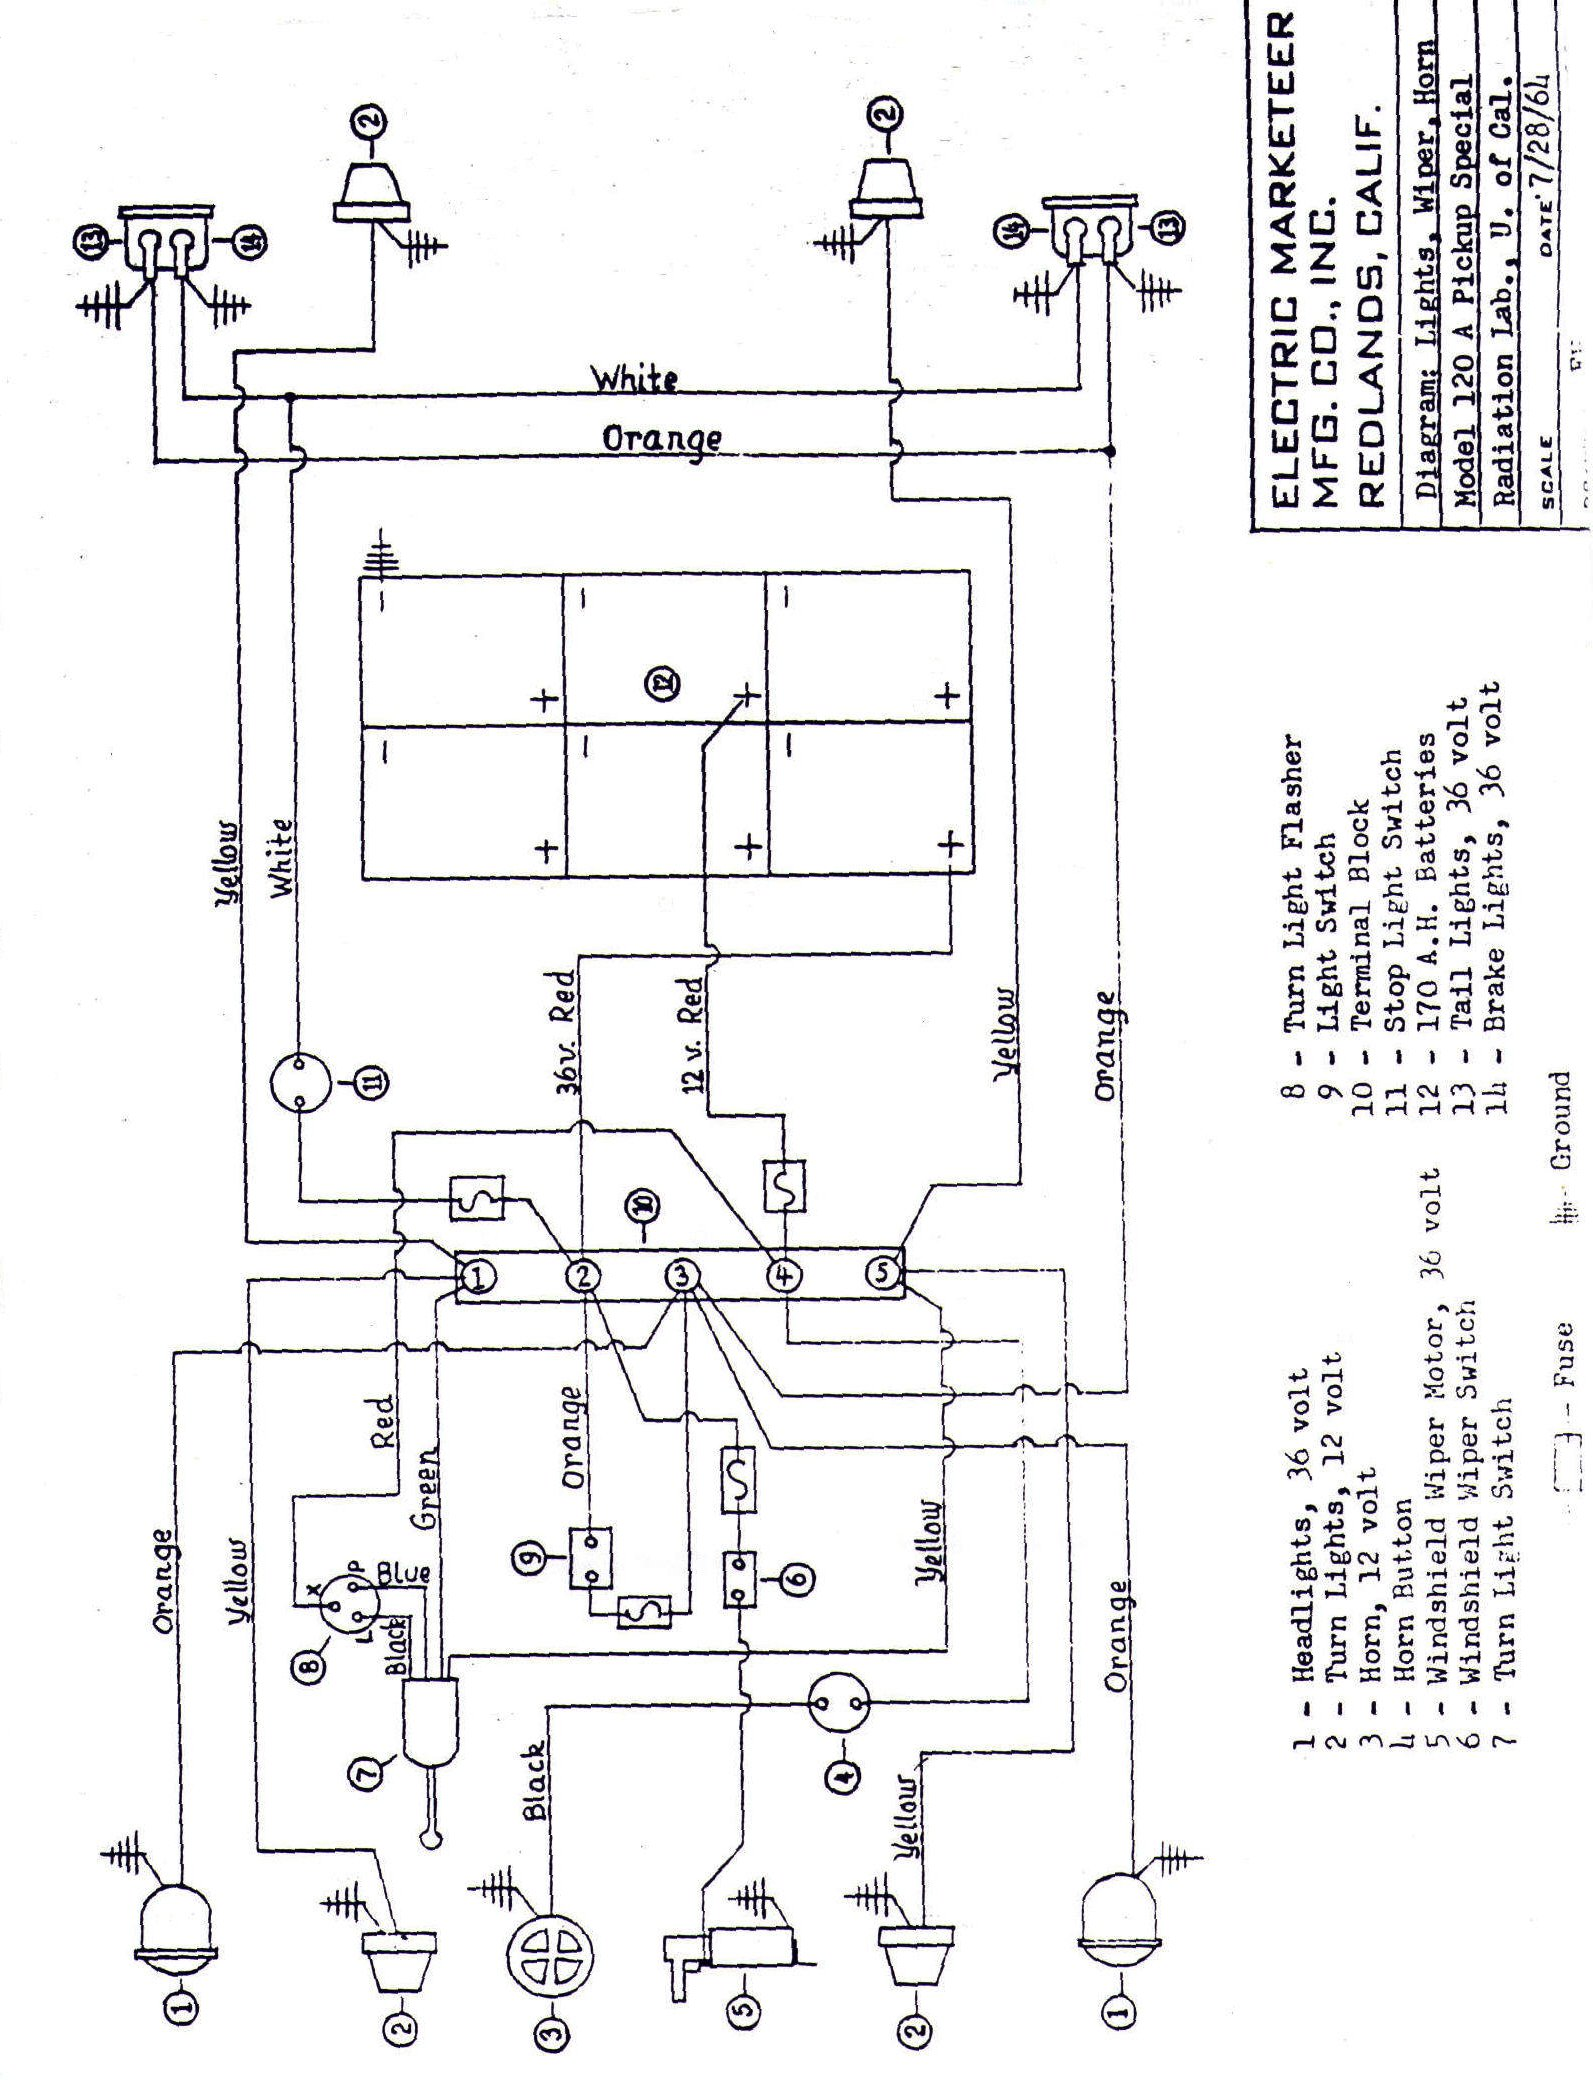 Club Car D Golf Cart Wiring Diagram